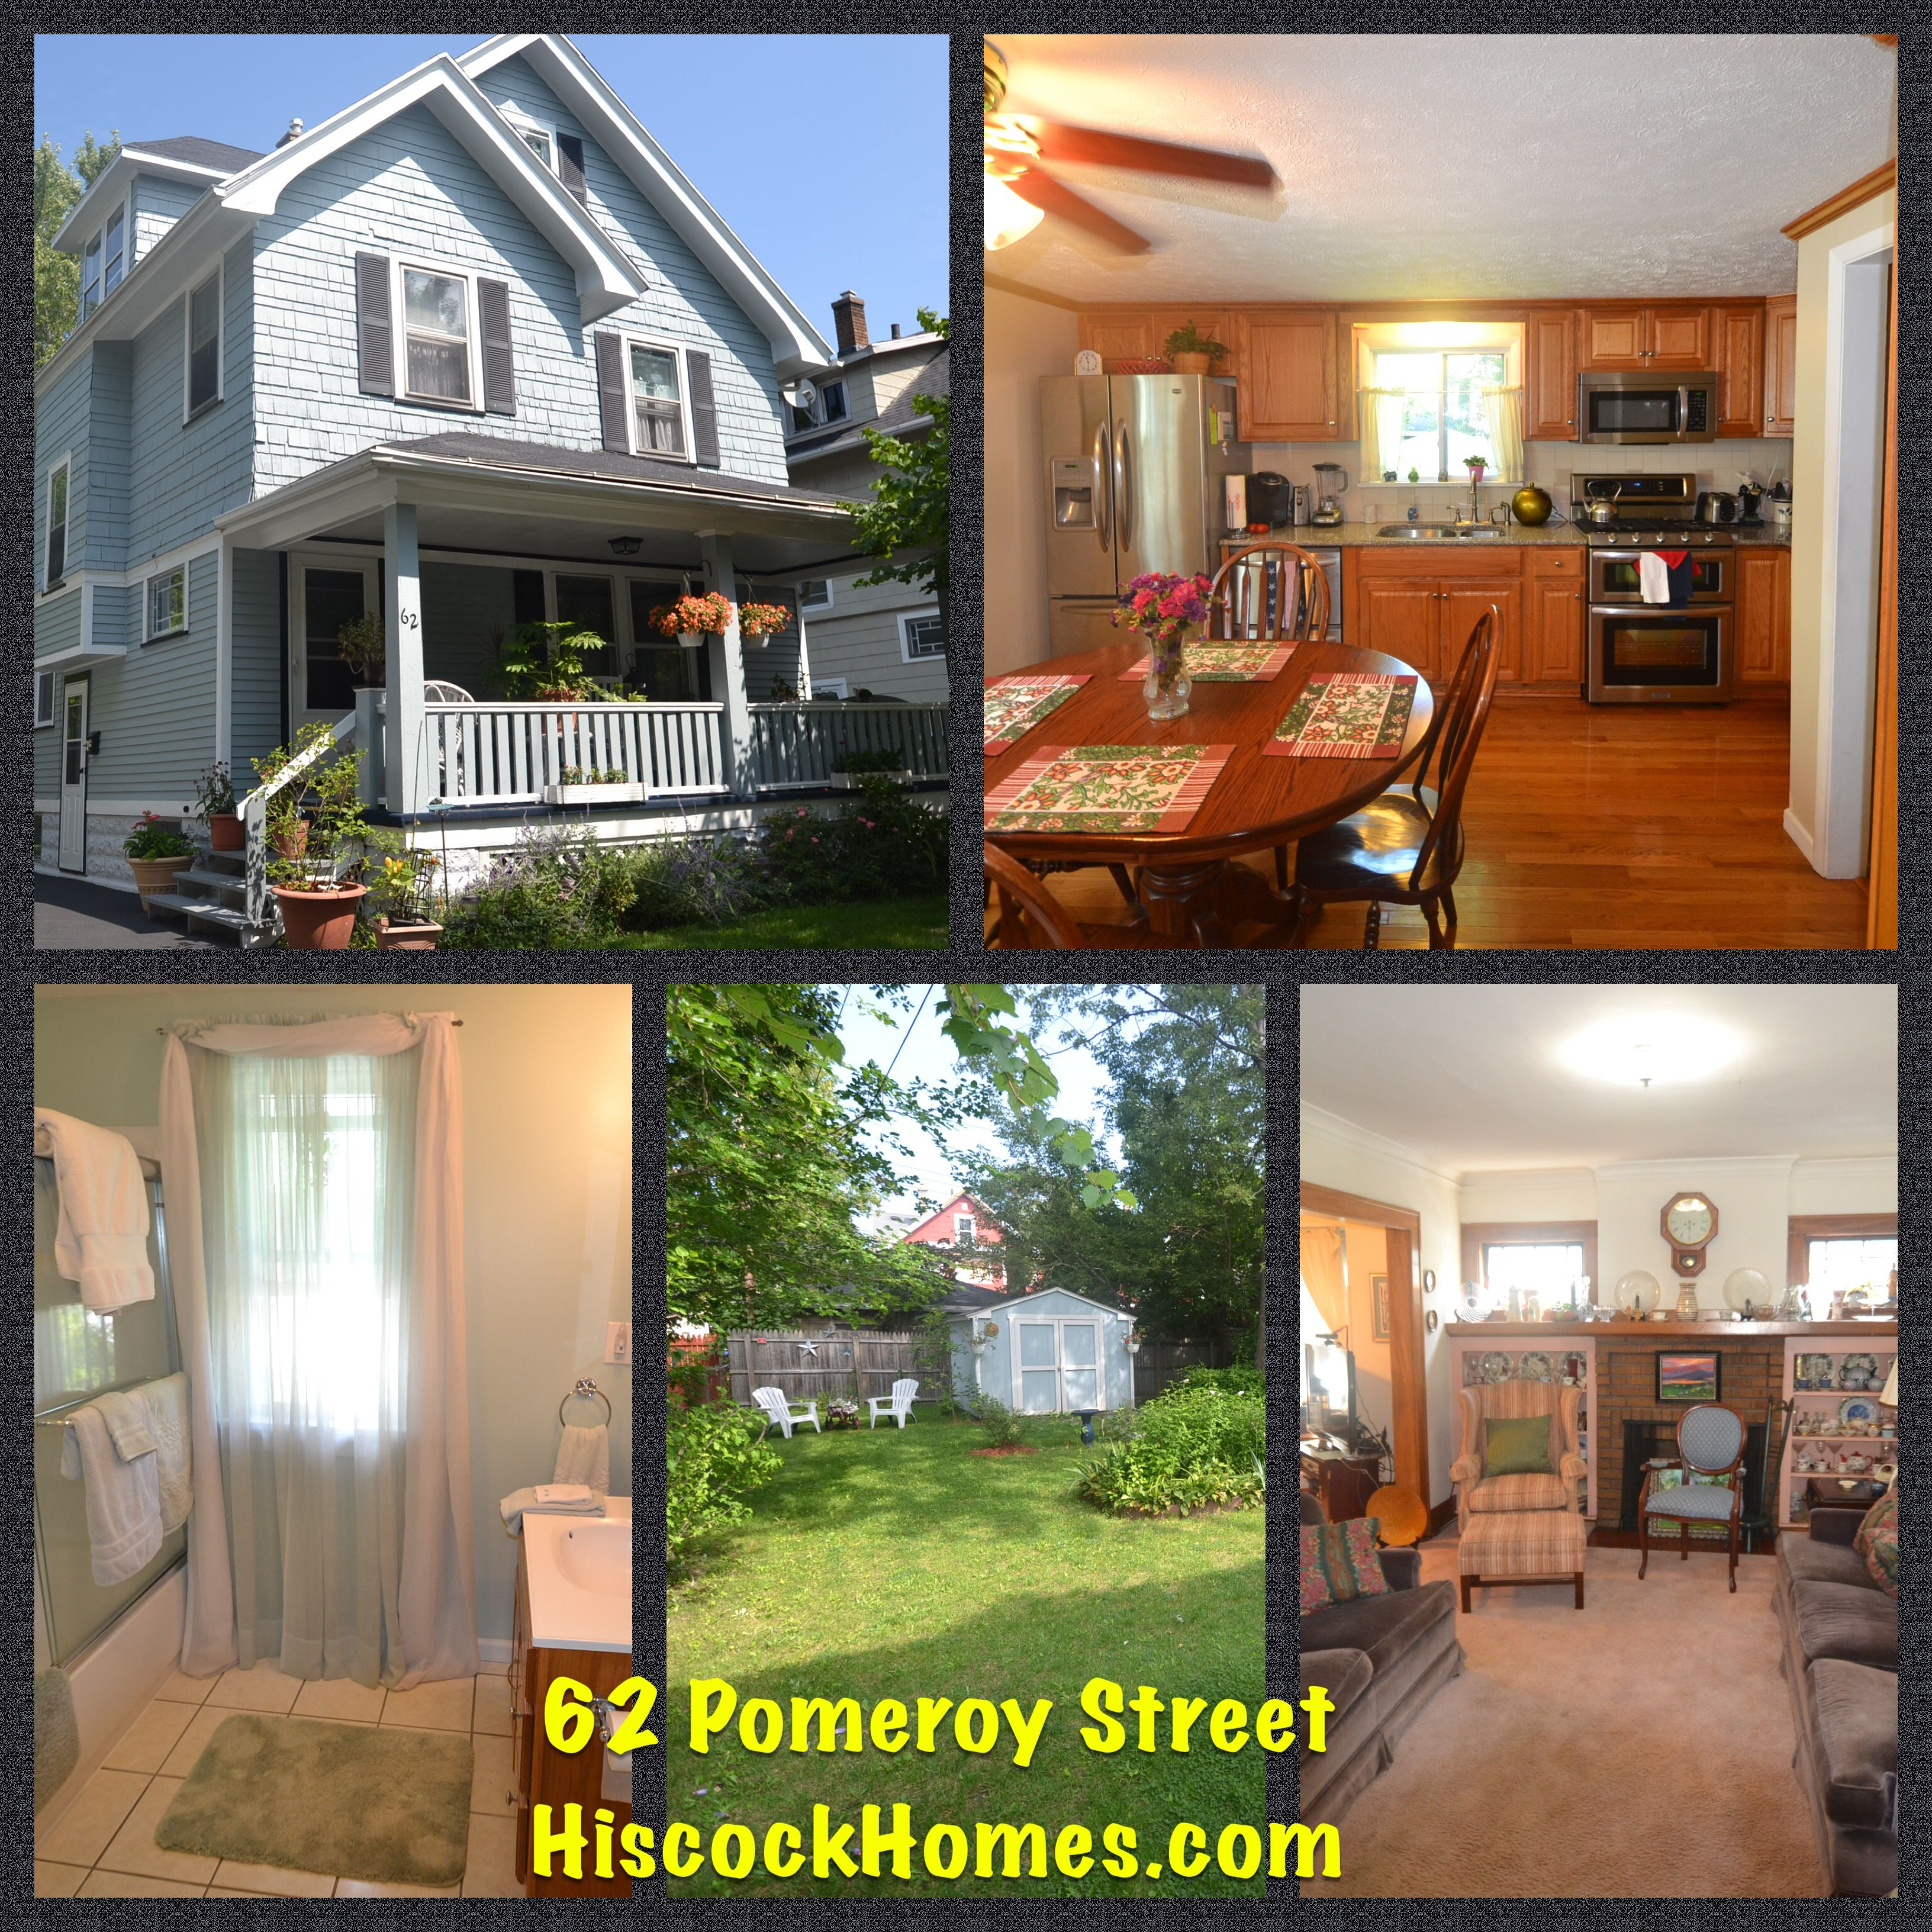 Just listed 62 pomeroy street in the city of rochester is